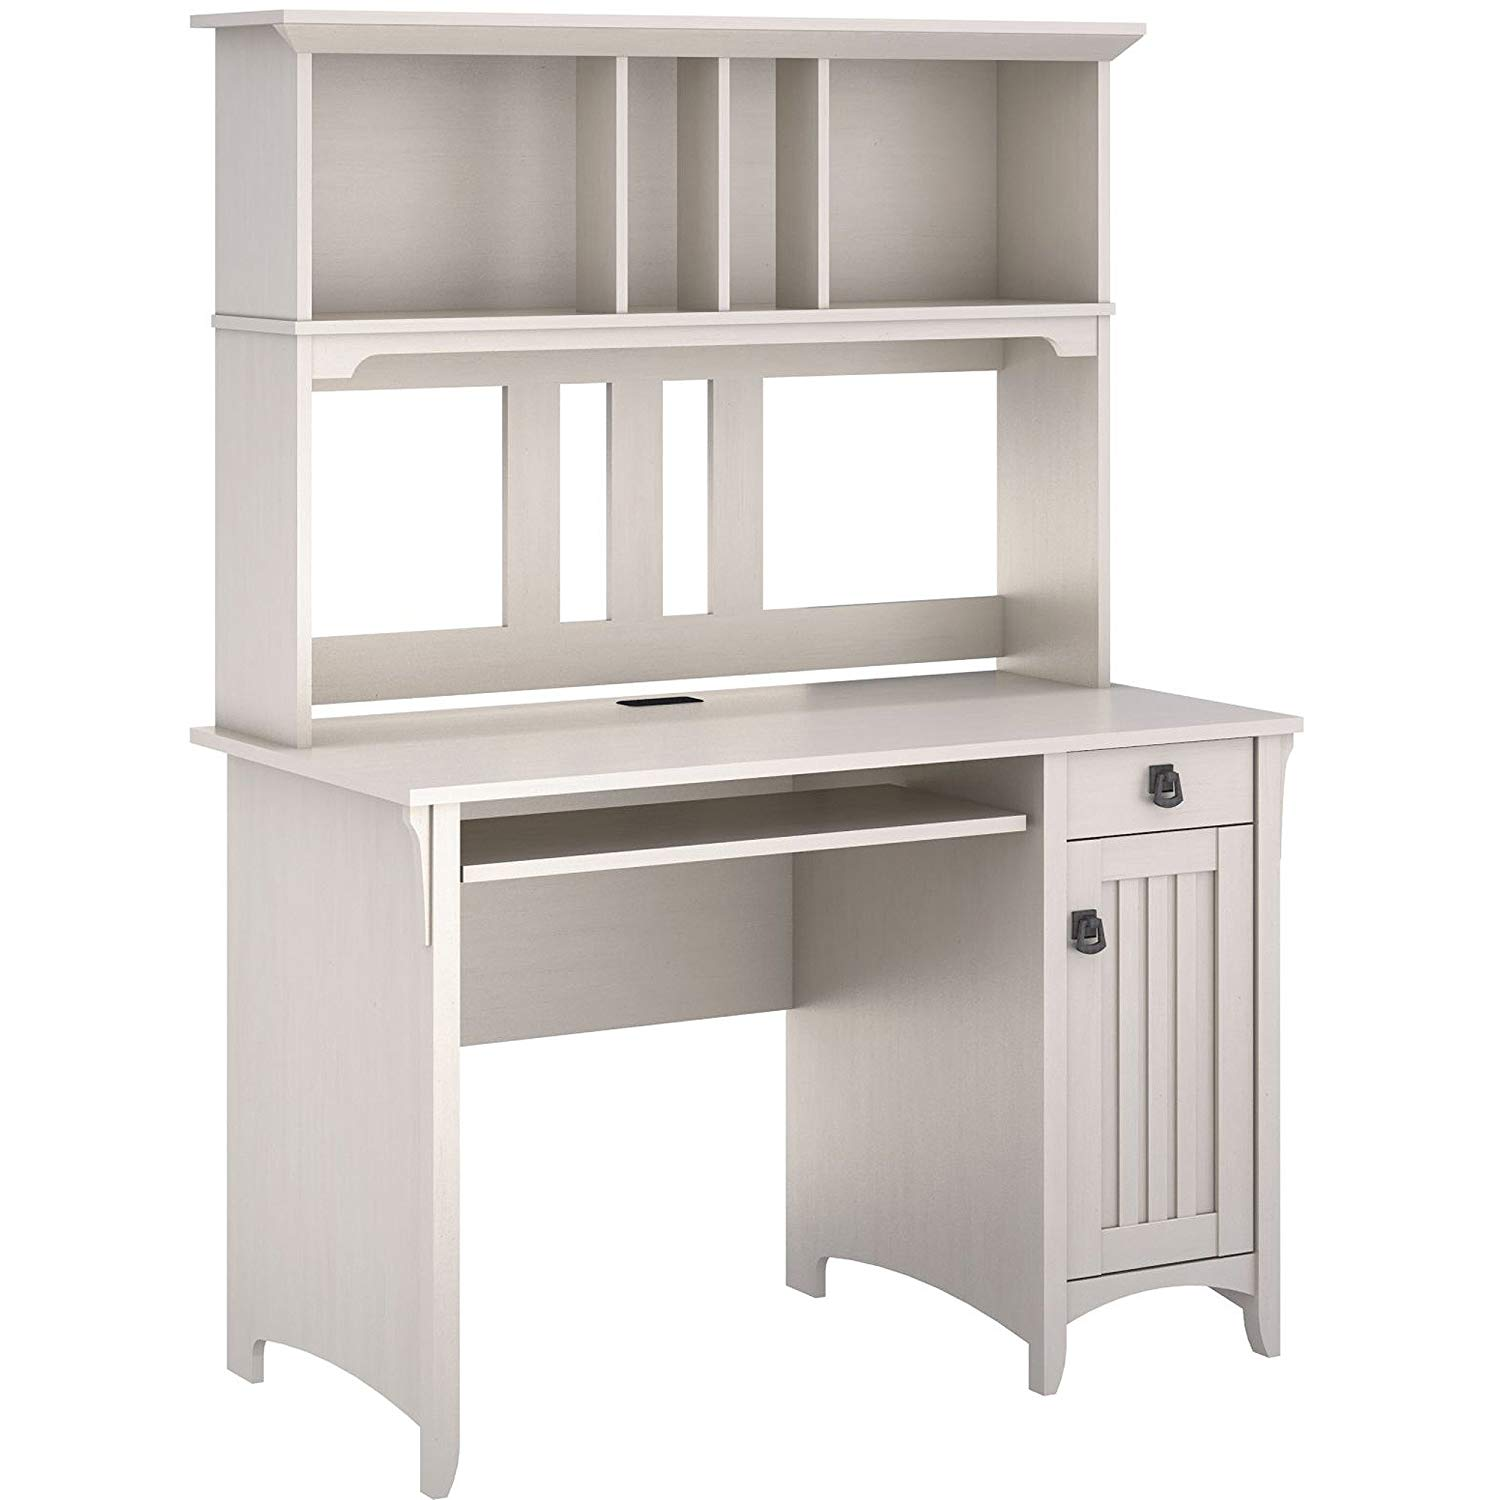 Excellent Delux Desk & Hutch, Combines Modern Looks that Never Get Old, Features the Clean Lines with an Attractive Creamy Antique White Finish, Along with Technology-Ready Touches + Expert Guide